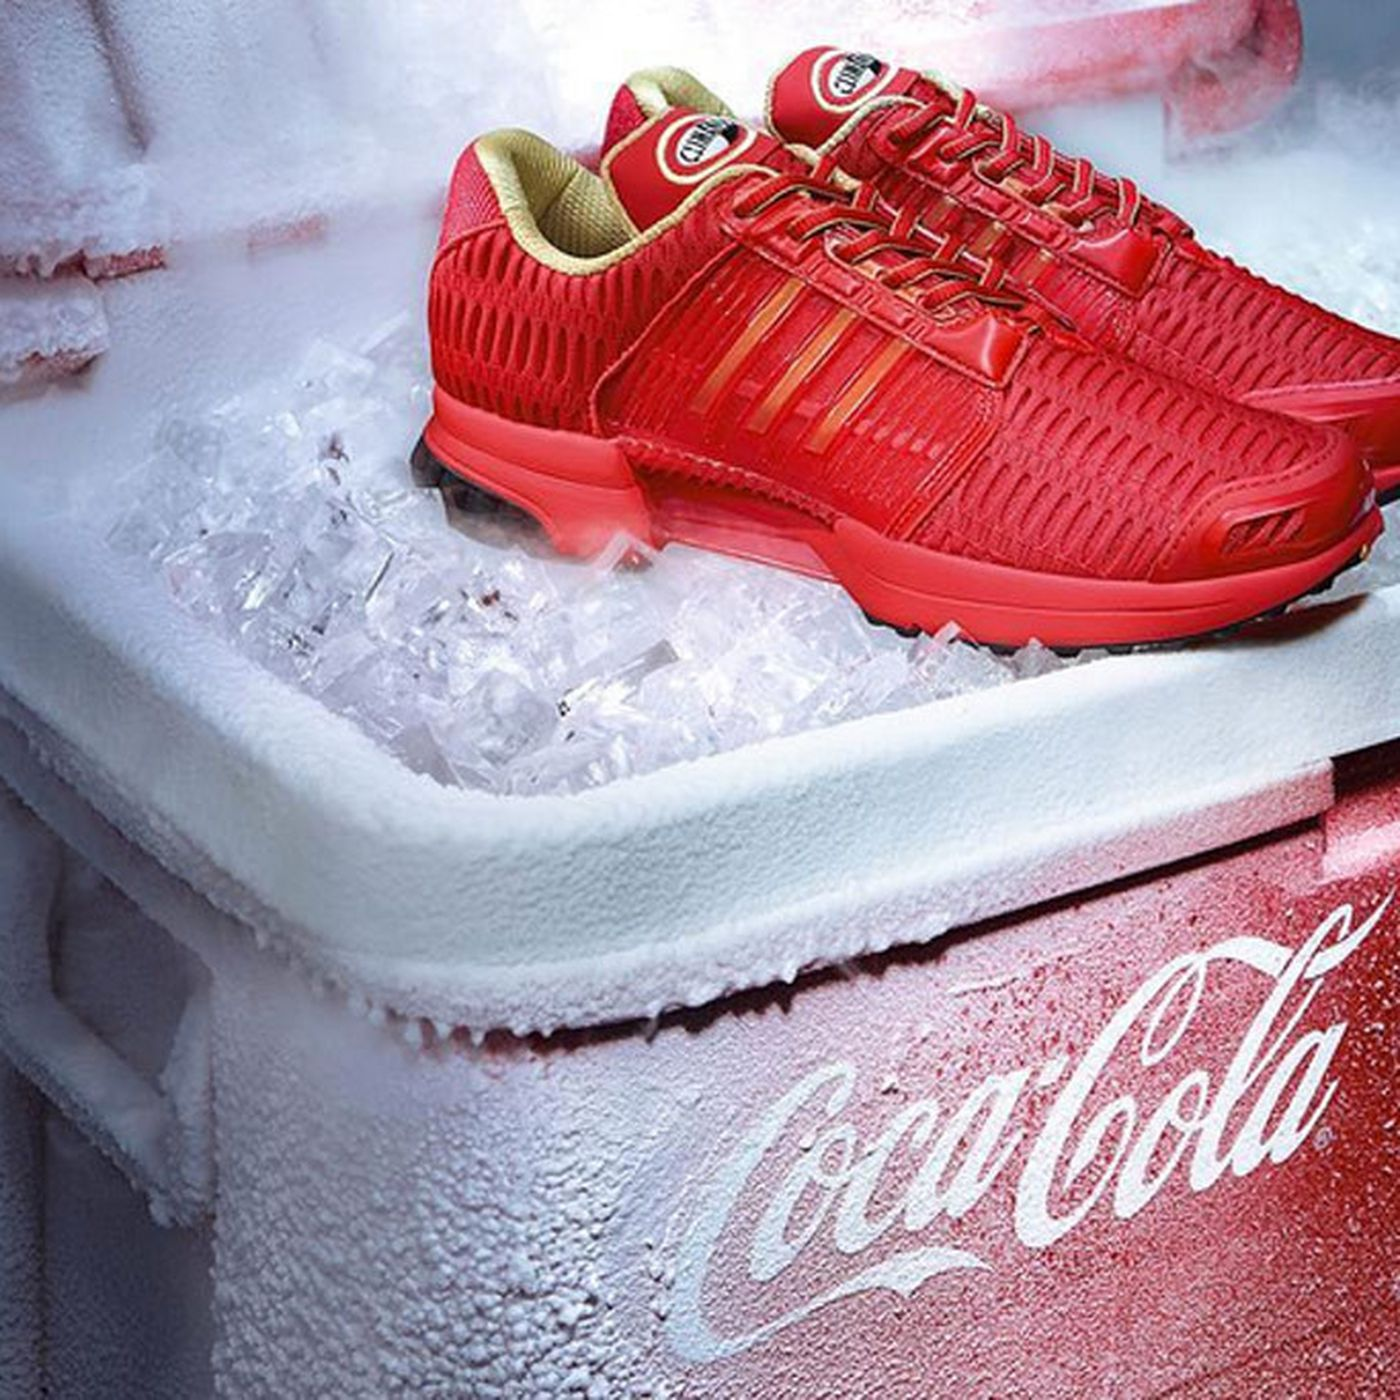 Adidas and Coca-Cola Team Up on Soda-Inspired Sneakers - Eater